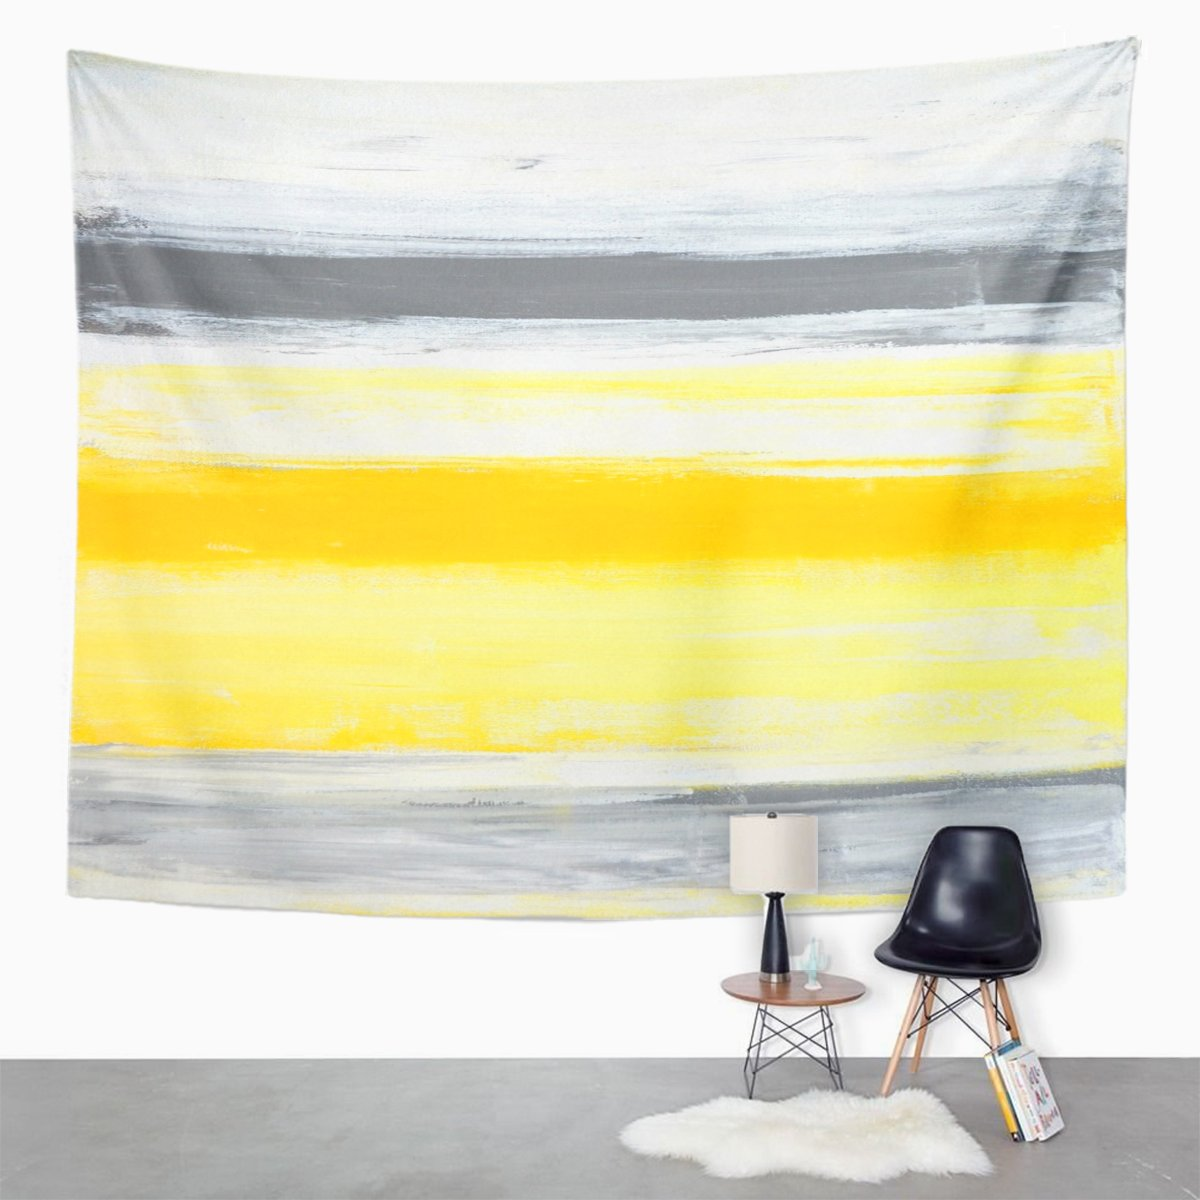 Tompop Tapestry Gray Blocks Grey And Yellow Abstract Painting Canvas Contemporary Home Decor Wall Hanging For Living Room Bedroom Dorm 50x60 Inches